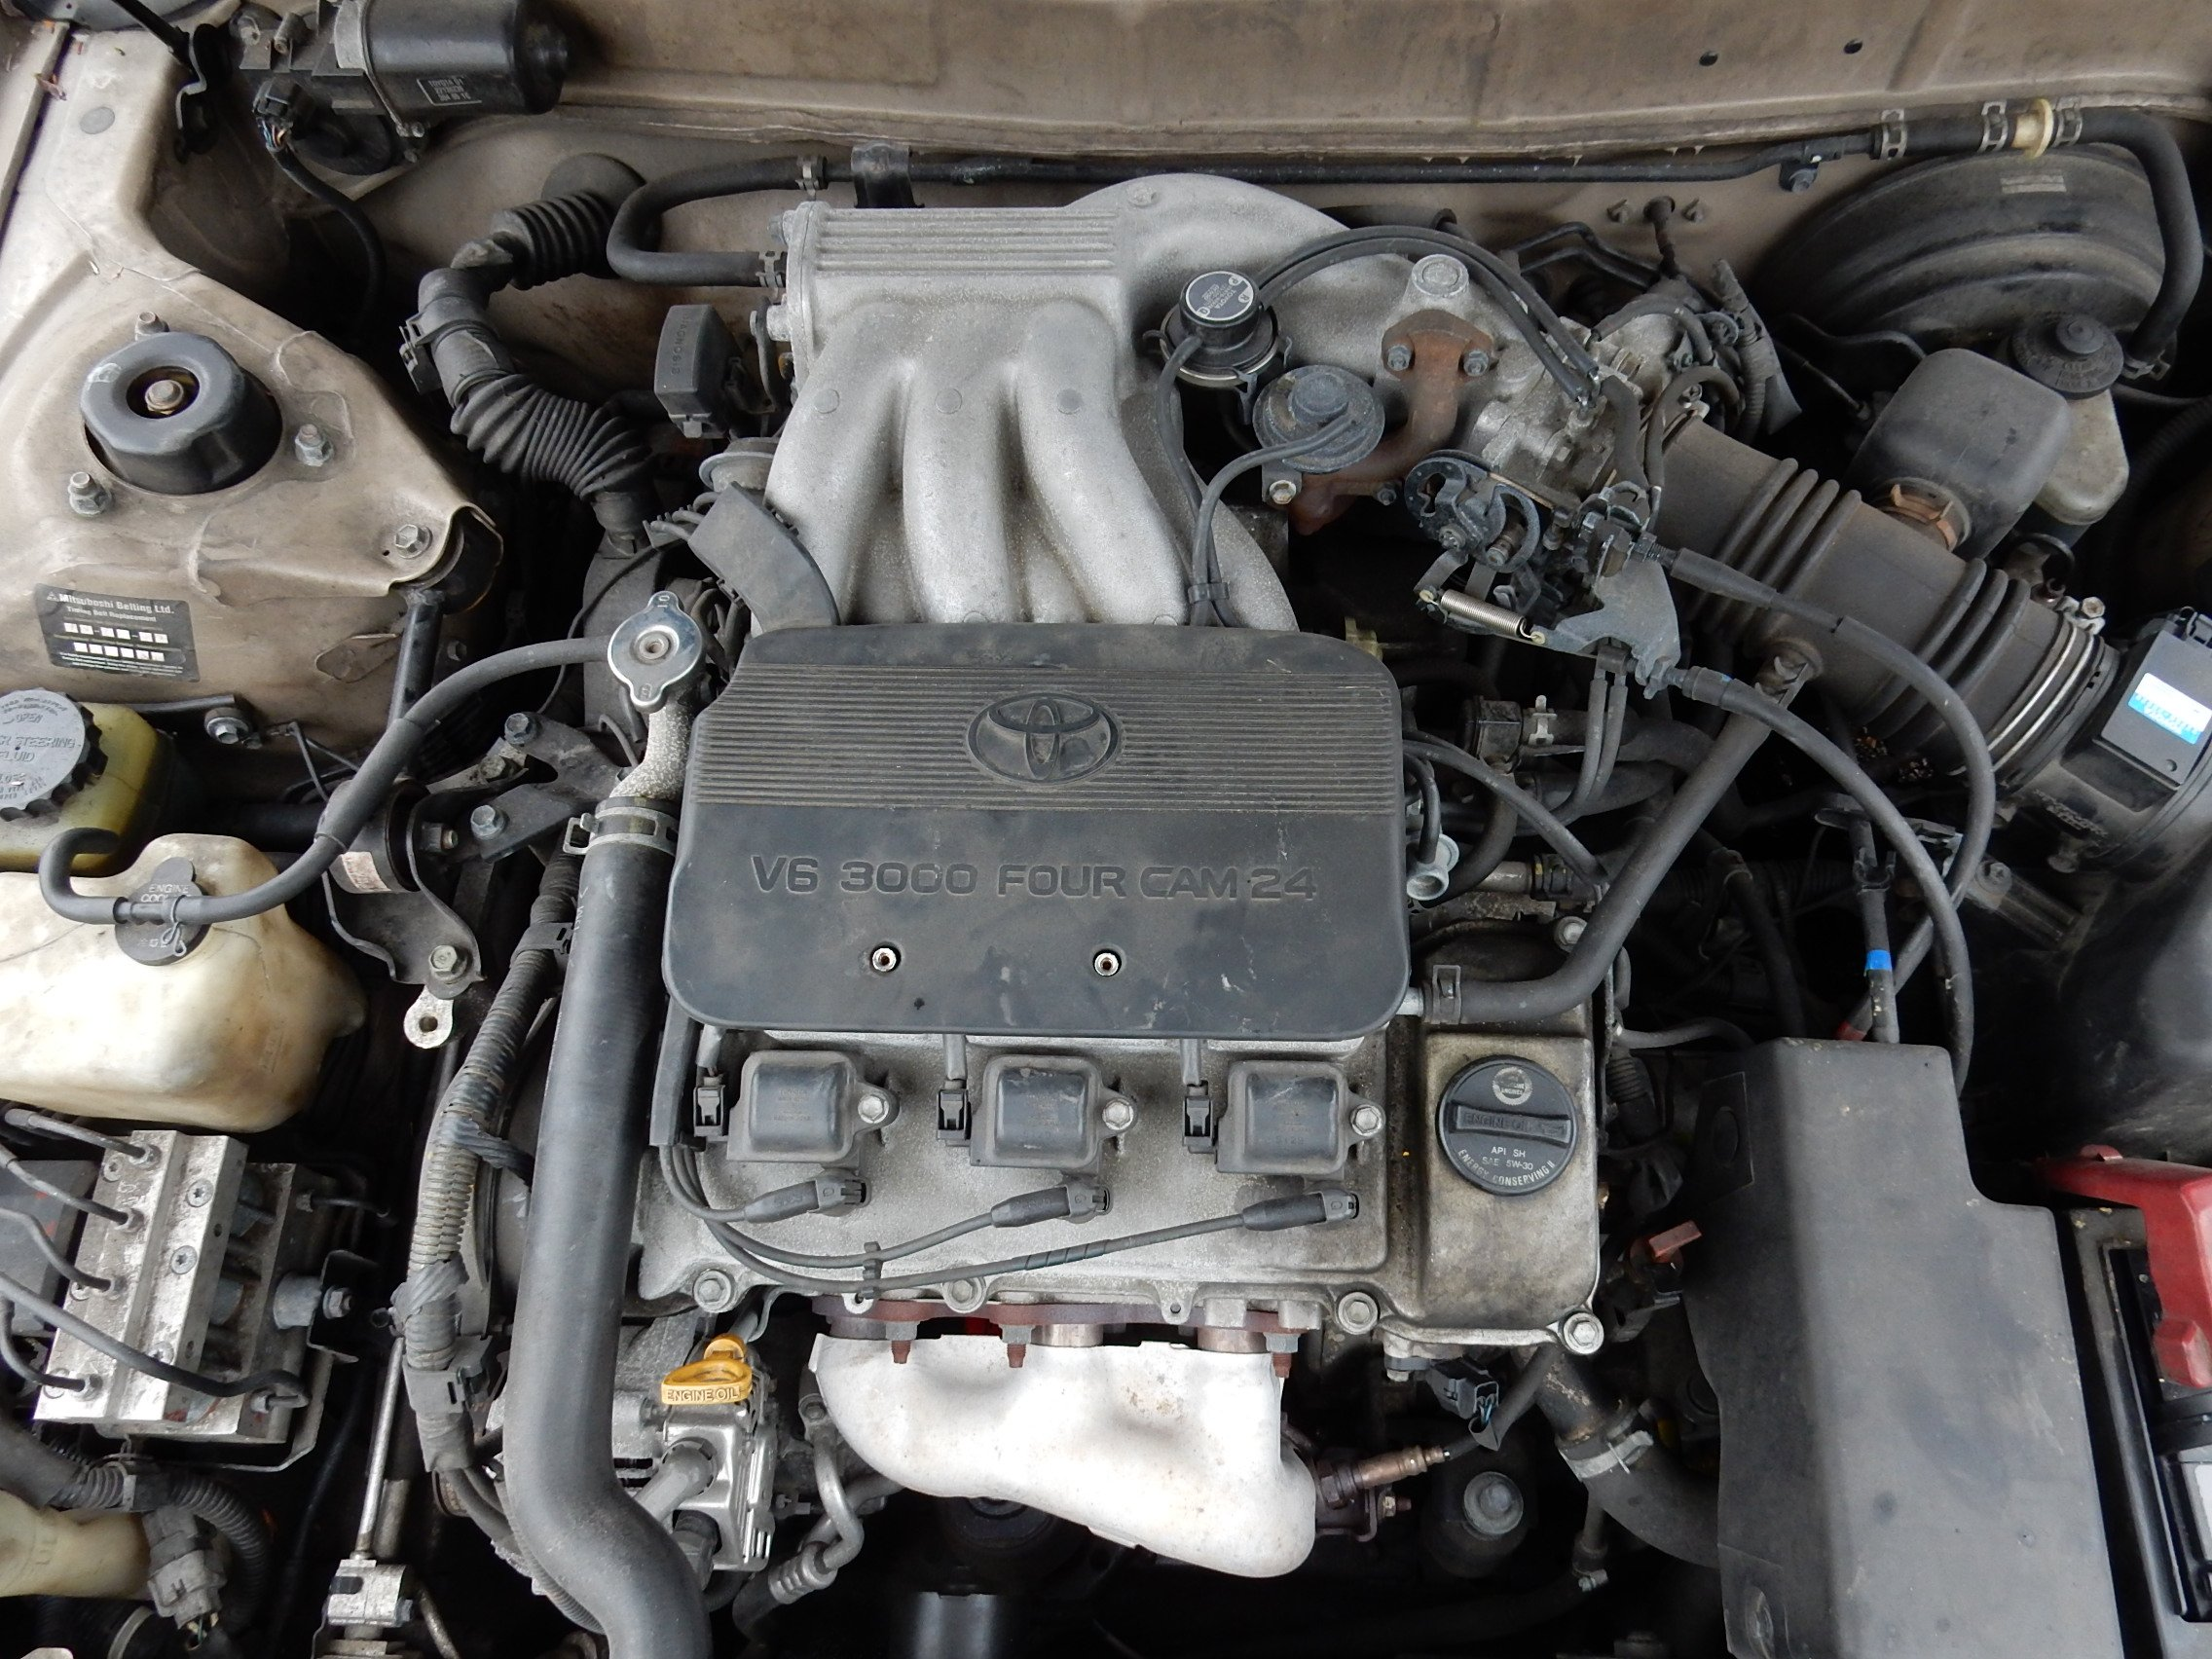 V6 3000 4 Cam 24 Toyota Engine Diagram Trusted Wiring Diagrams Nissan I There 1996 Camry Four 1mz Fe Question 1 Check